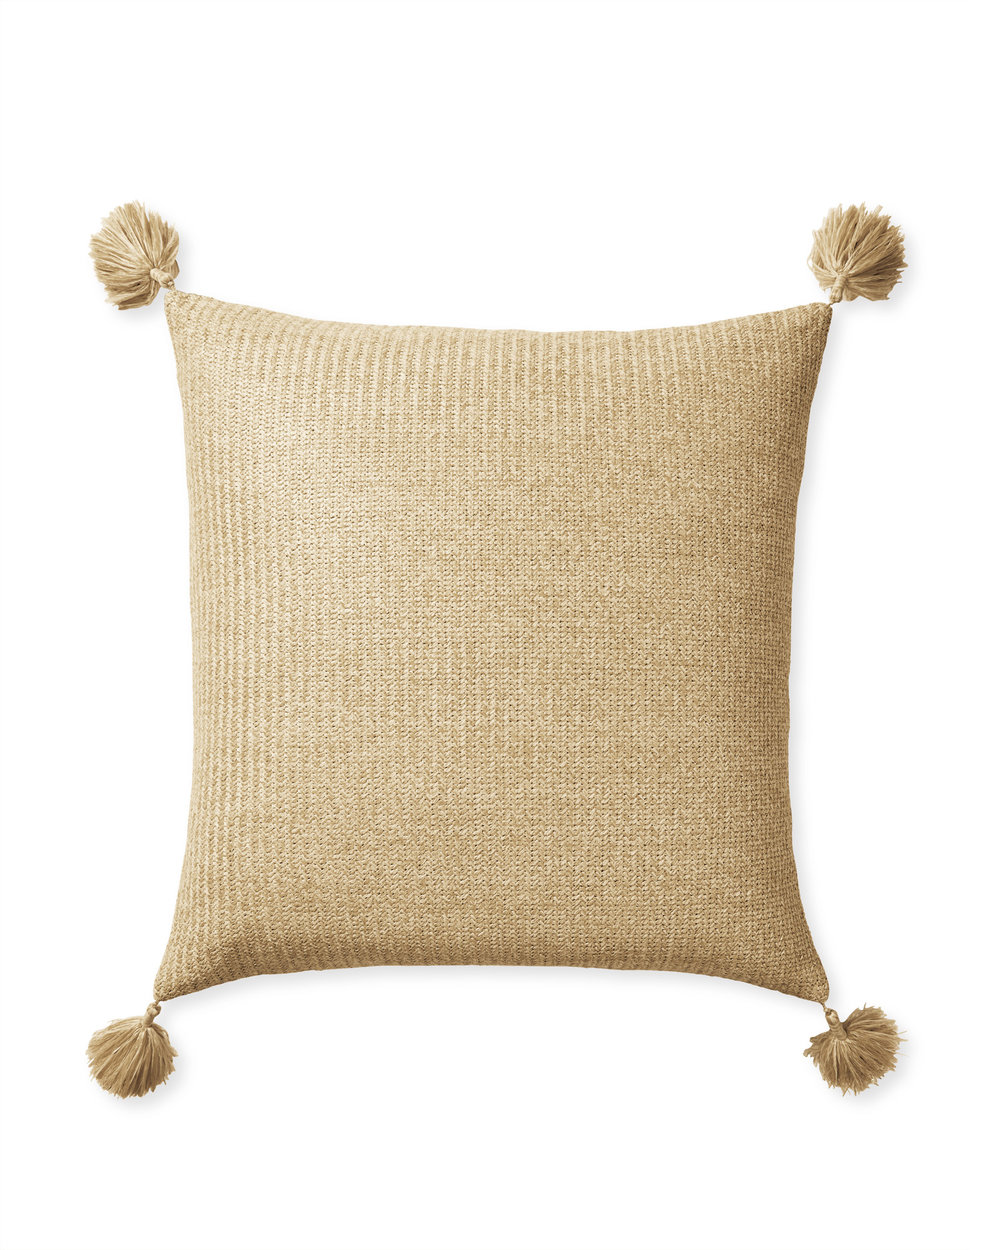 natural outdoor pillow